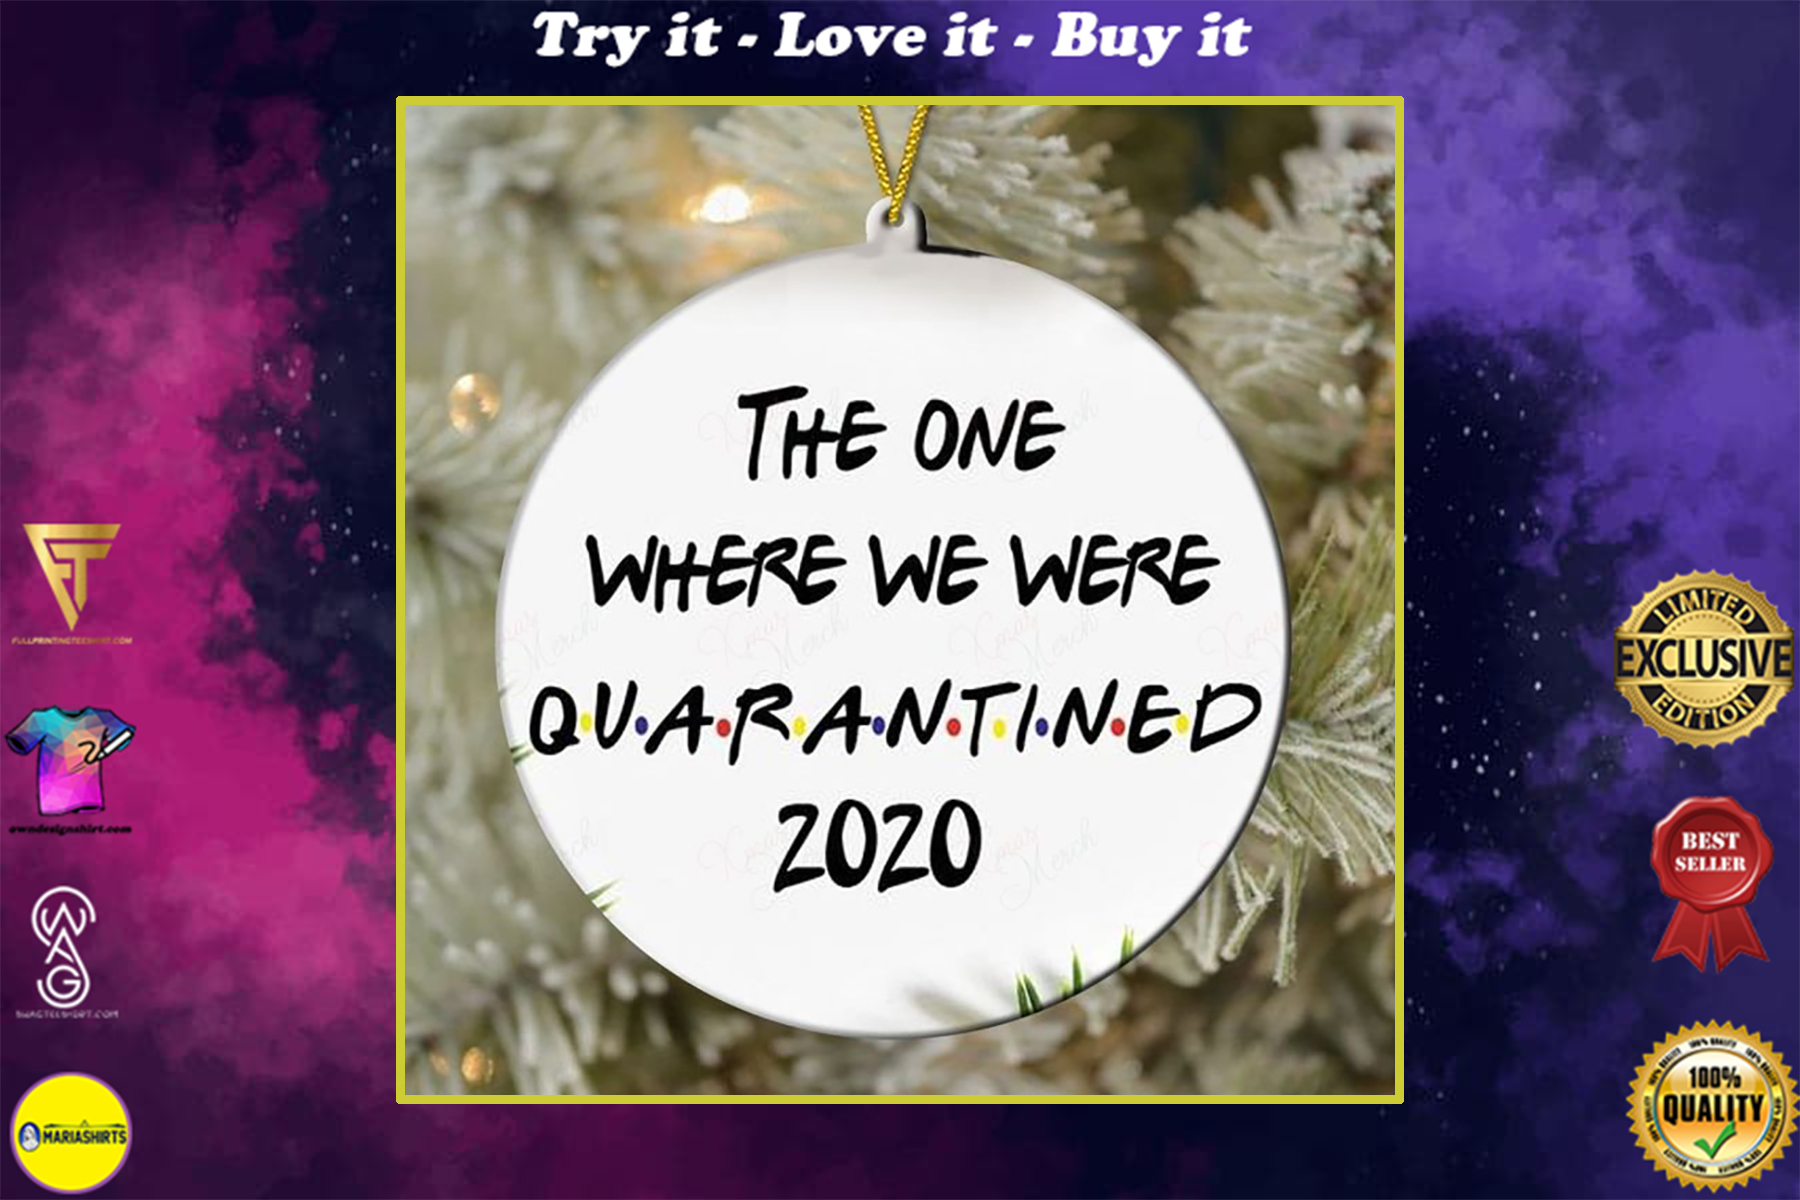 the one where we were quarantined 2020 christmas ornament